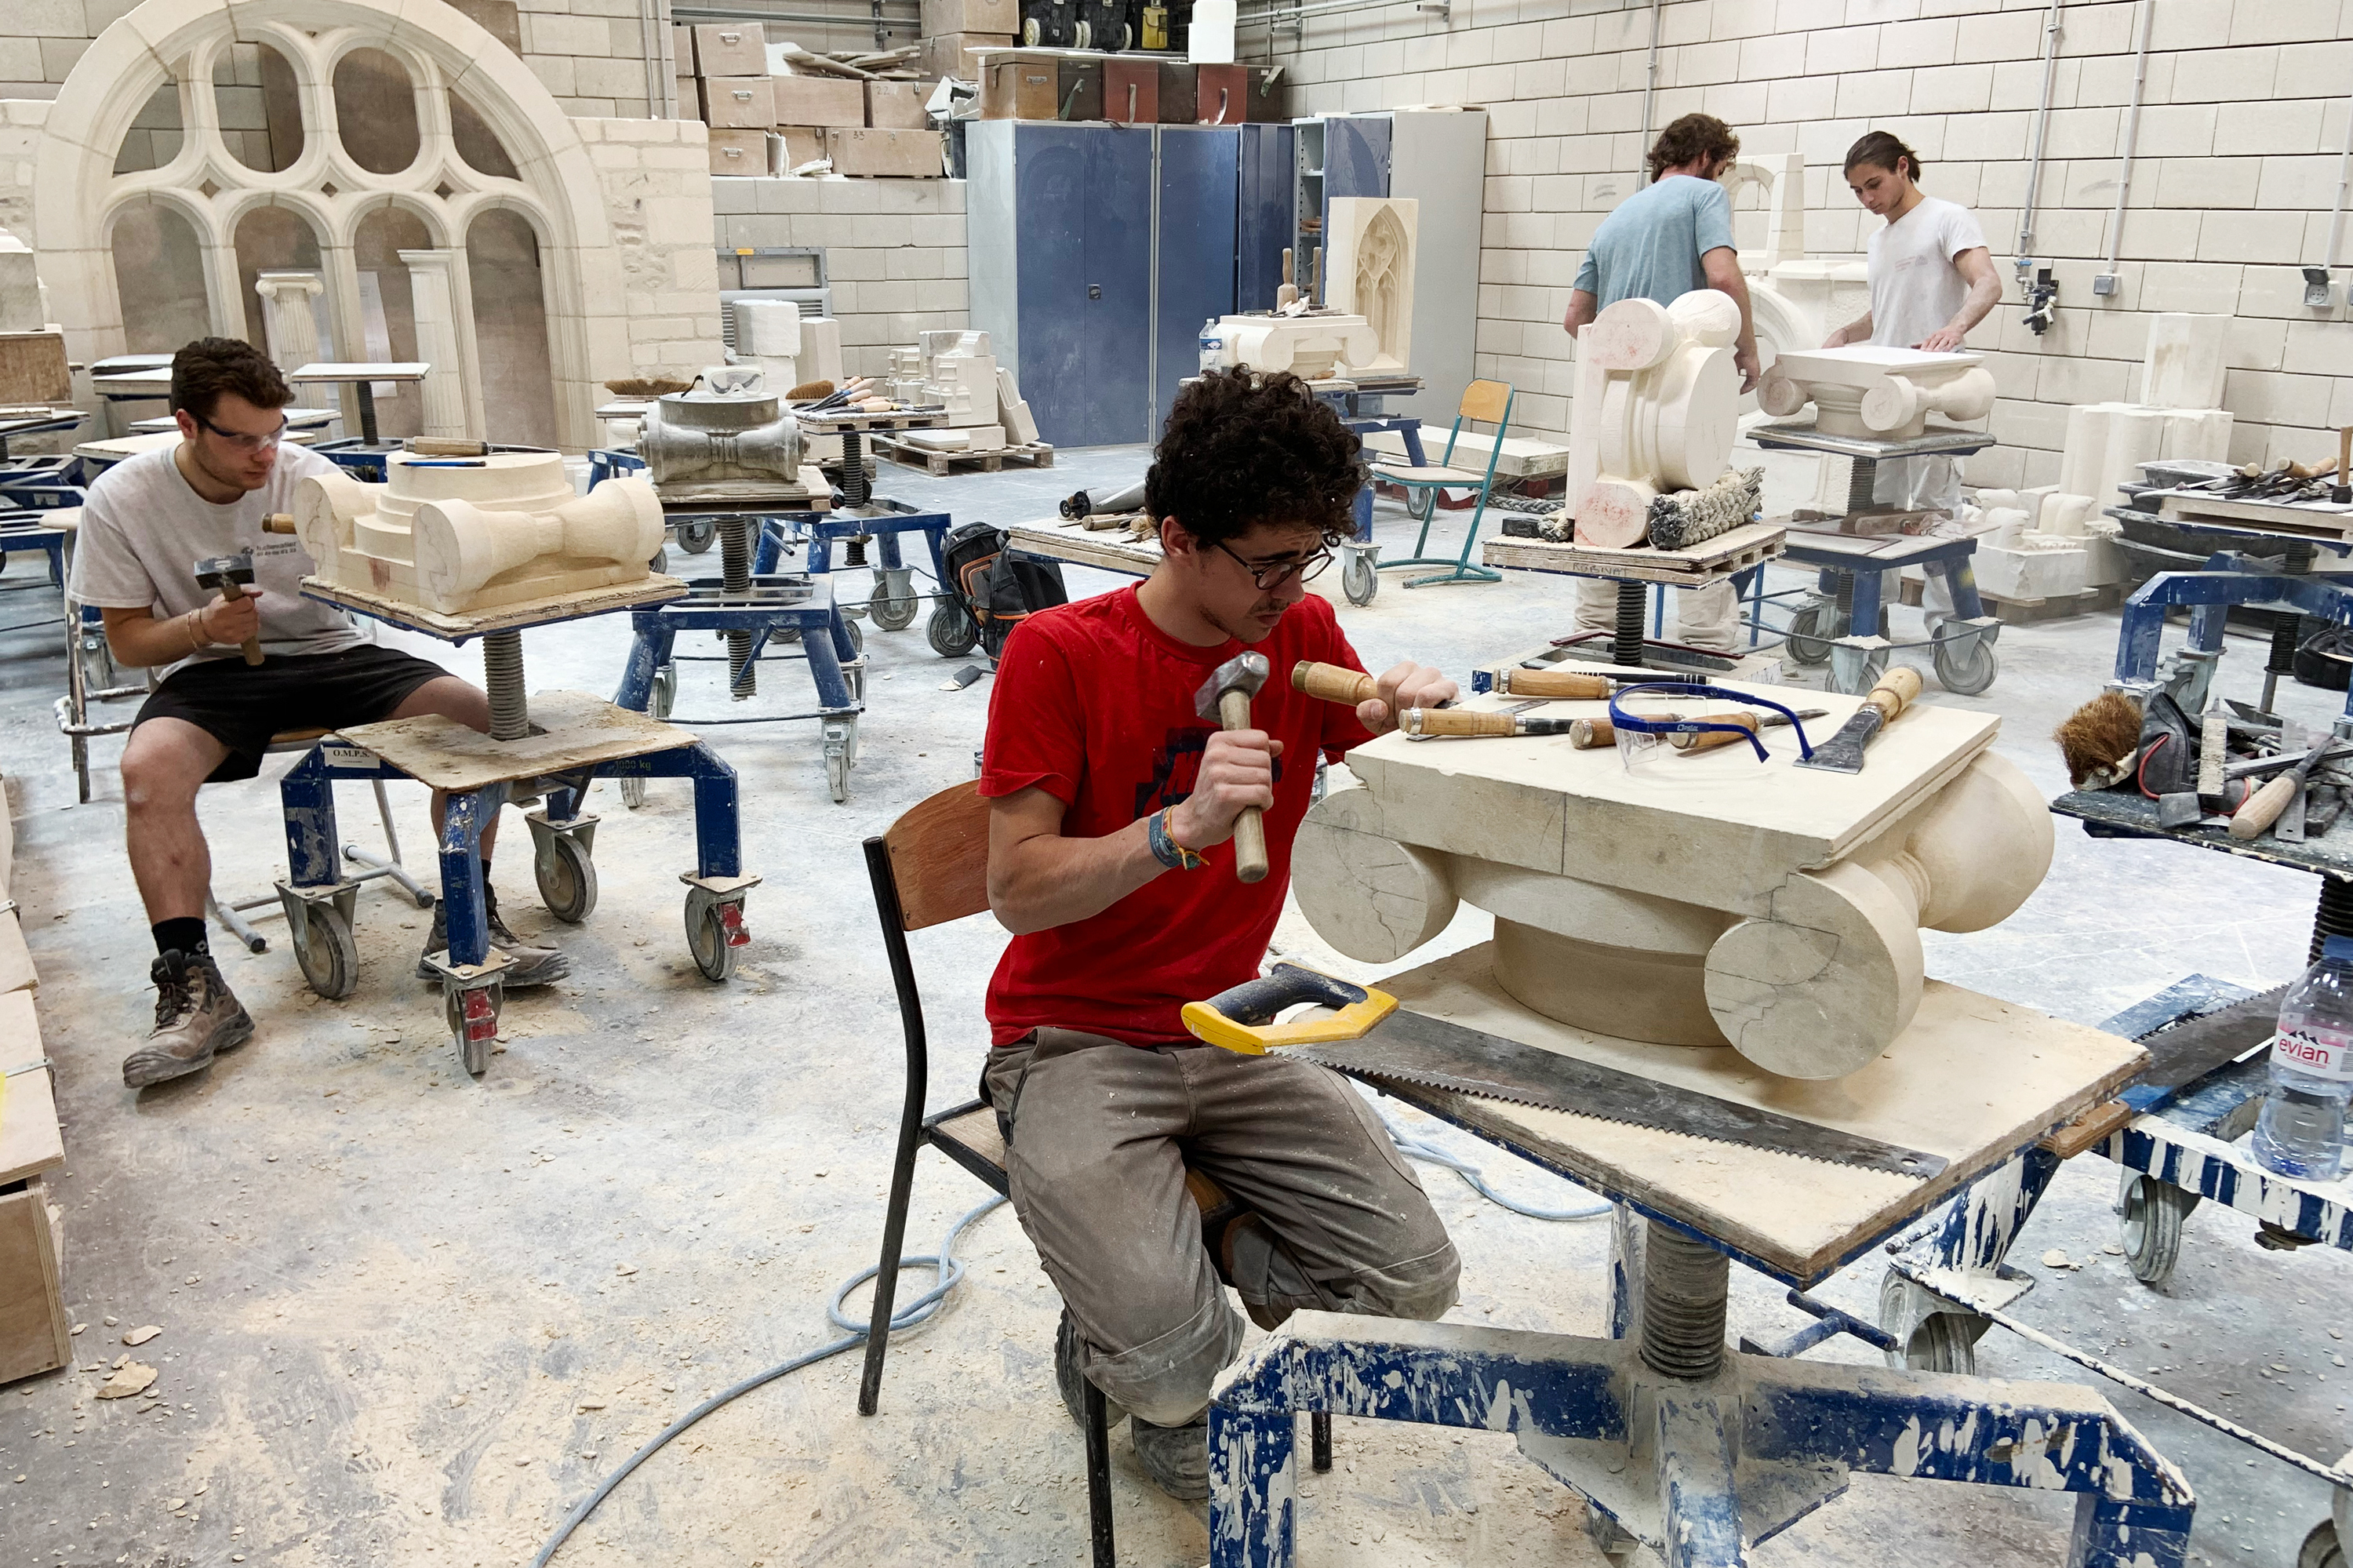 Students chip and chisel away at heavy slabs of stone in the workshops of the Hector Guimard high school, less than three miles from Paris' Notre Dame cathedral.